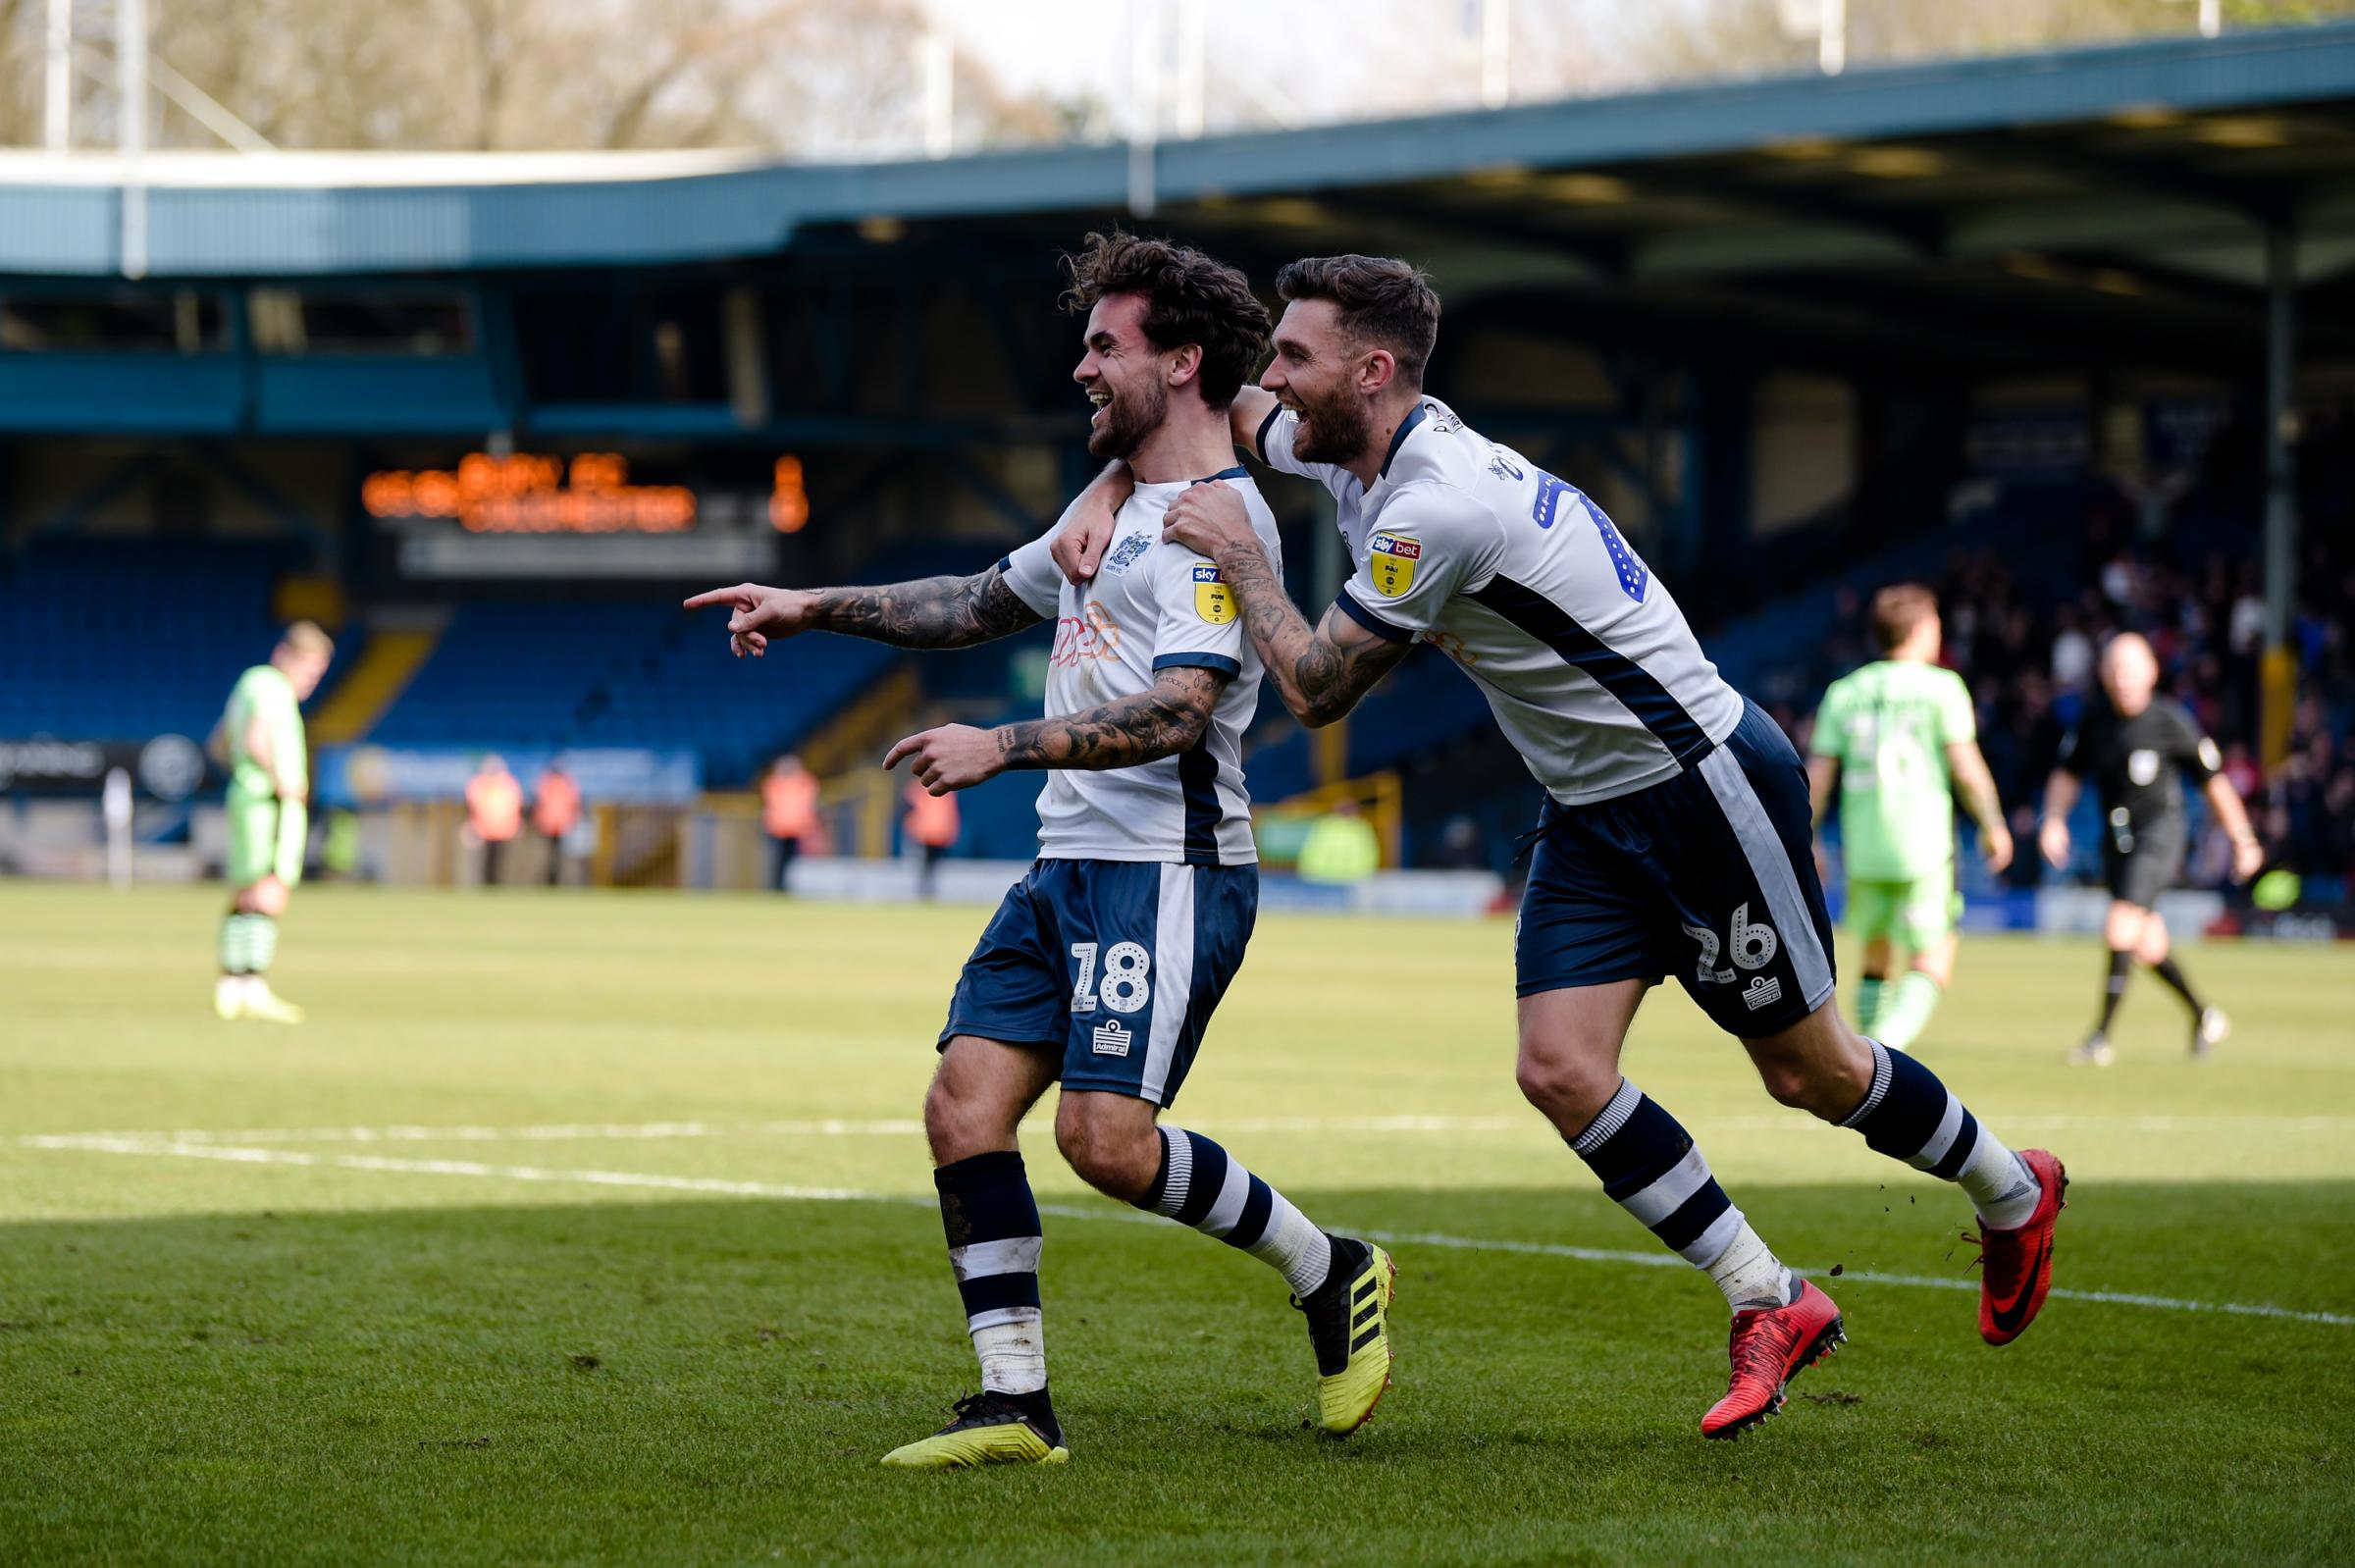 SHAKERS MATCH VERDICT: Bury 2-0 Colchester United